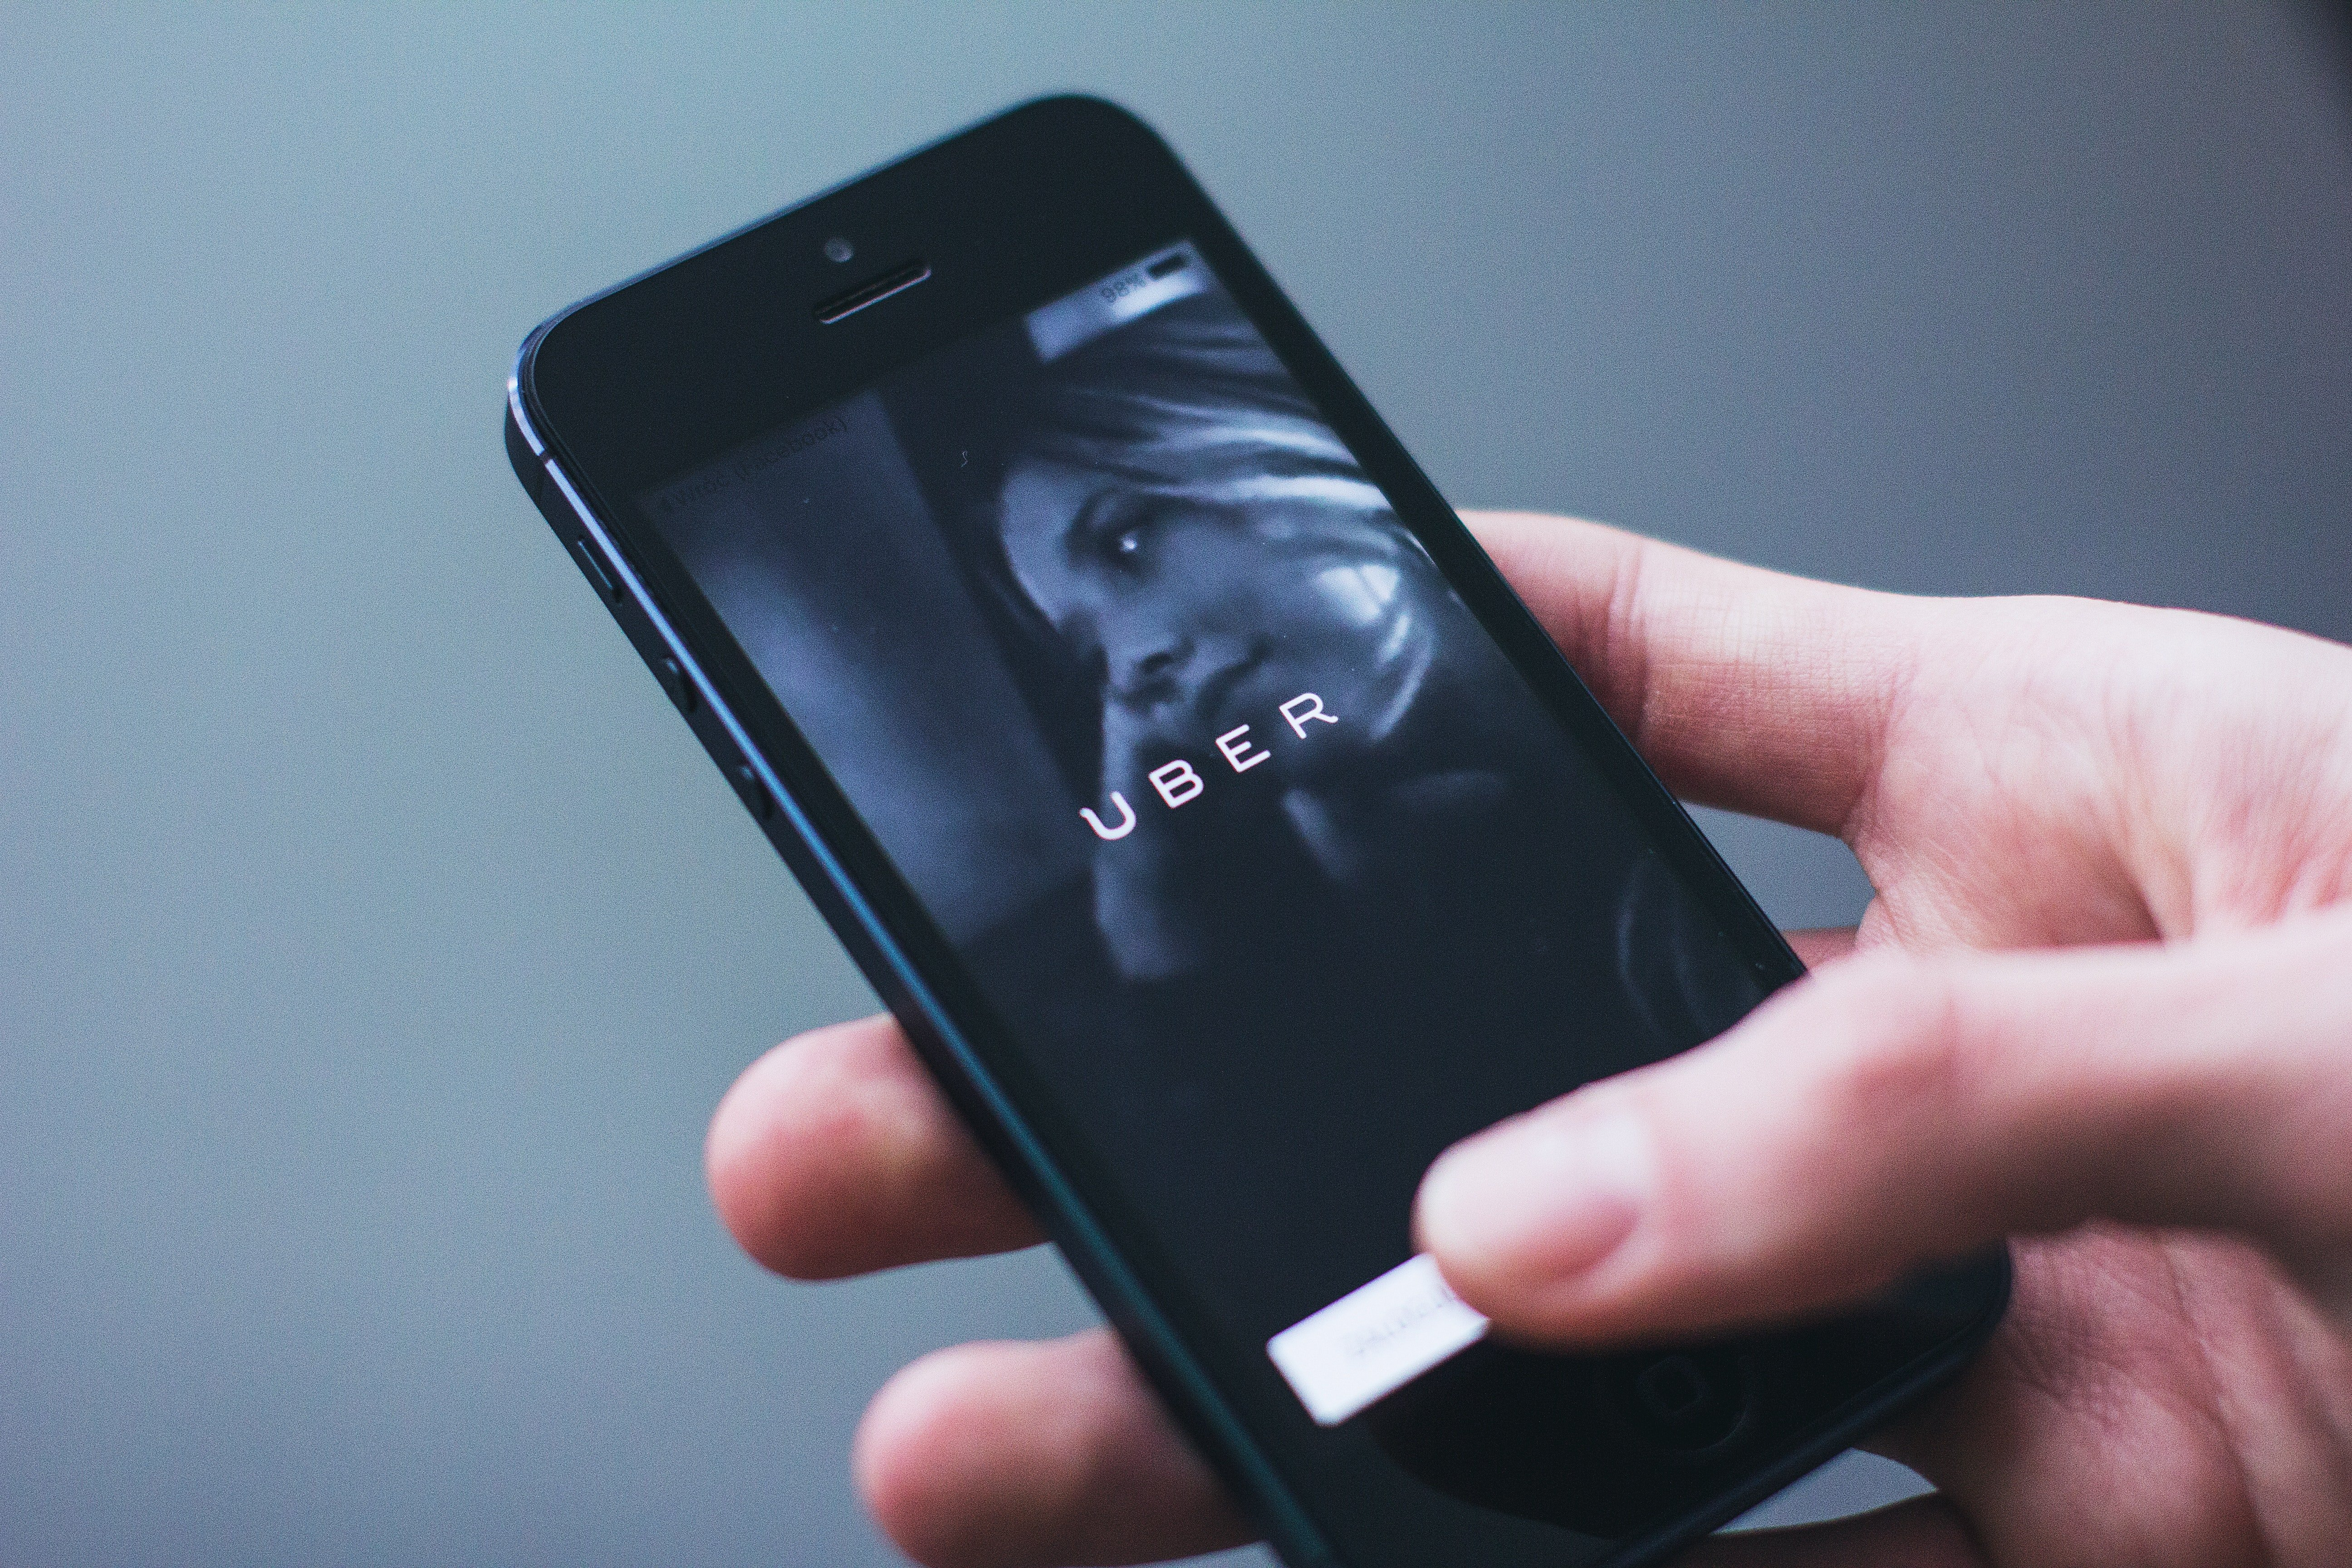 Hand holding mobile phone with Uber app. | Source: Pexels